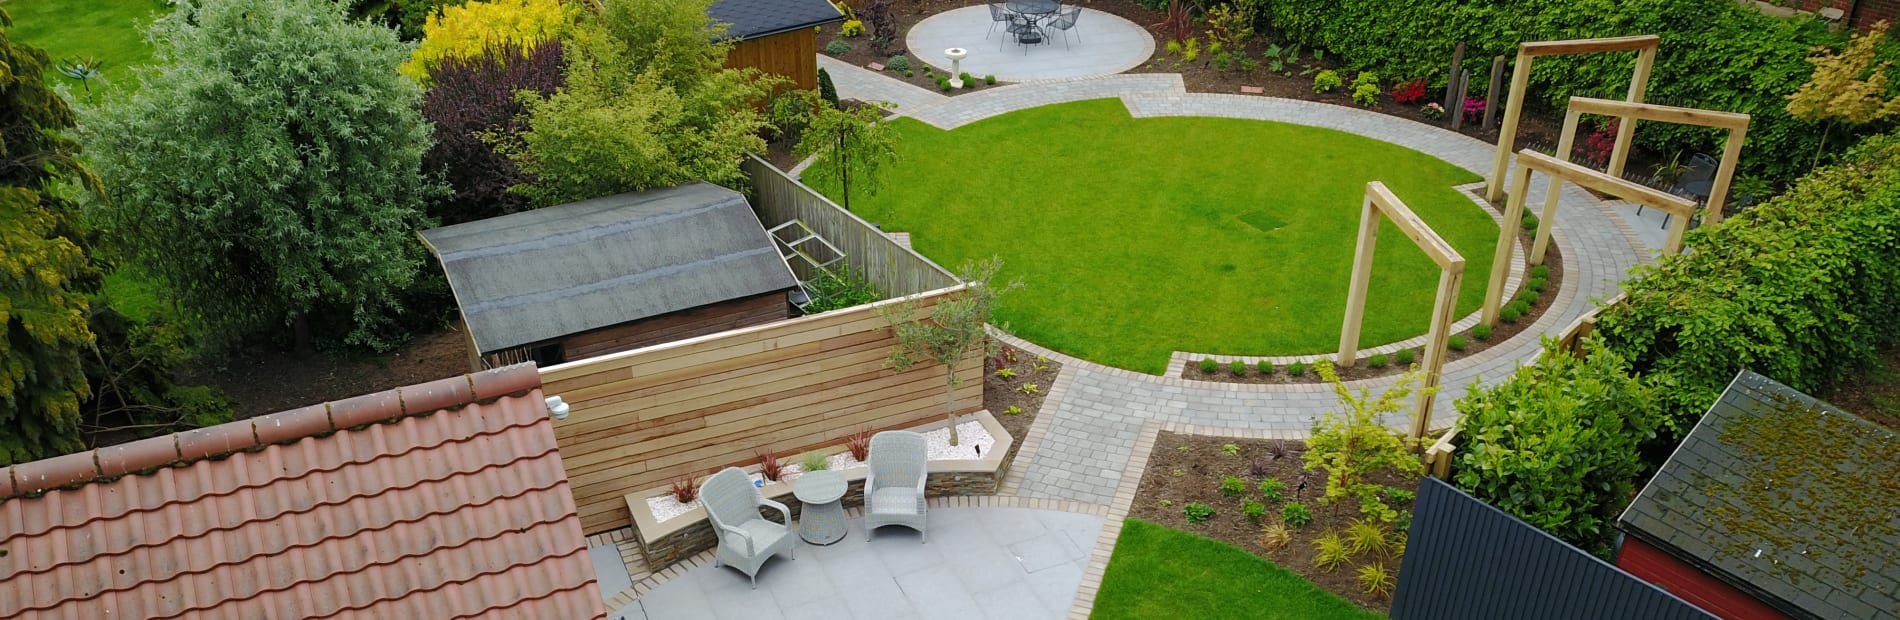 Zoned garden area